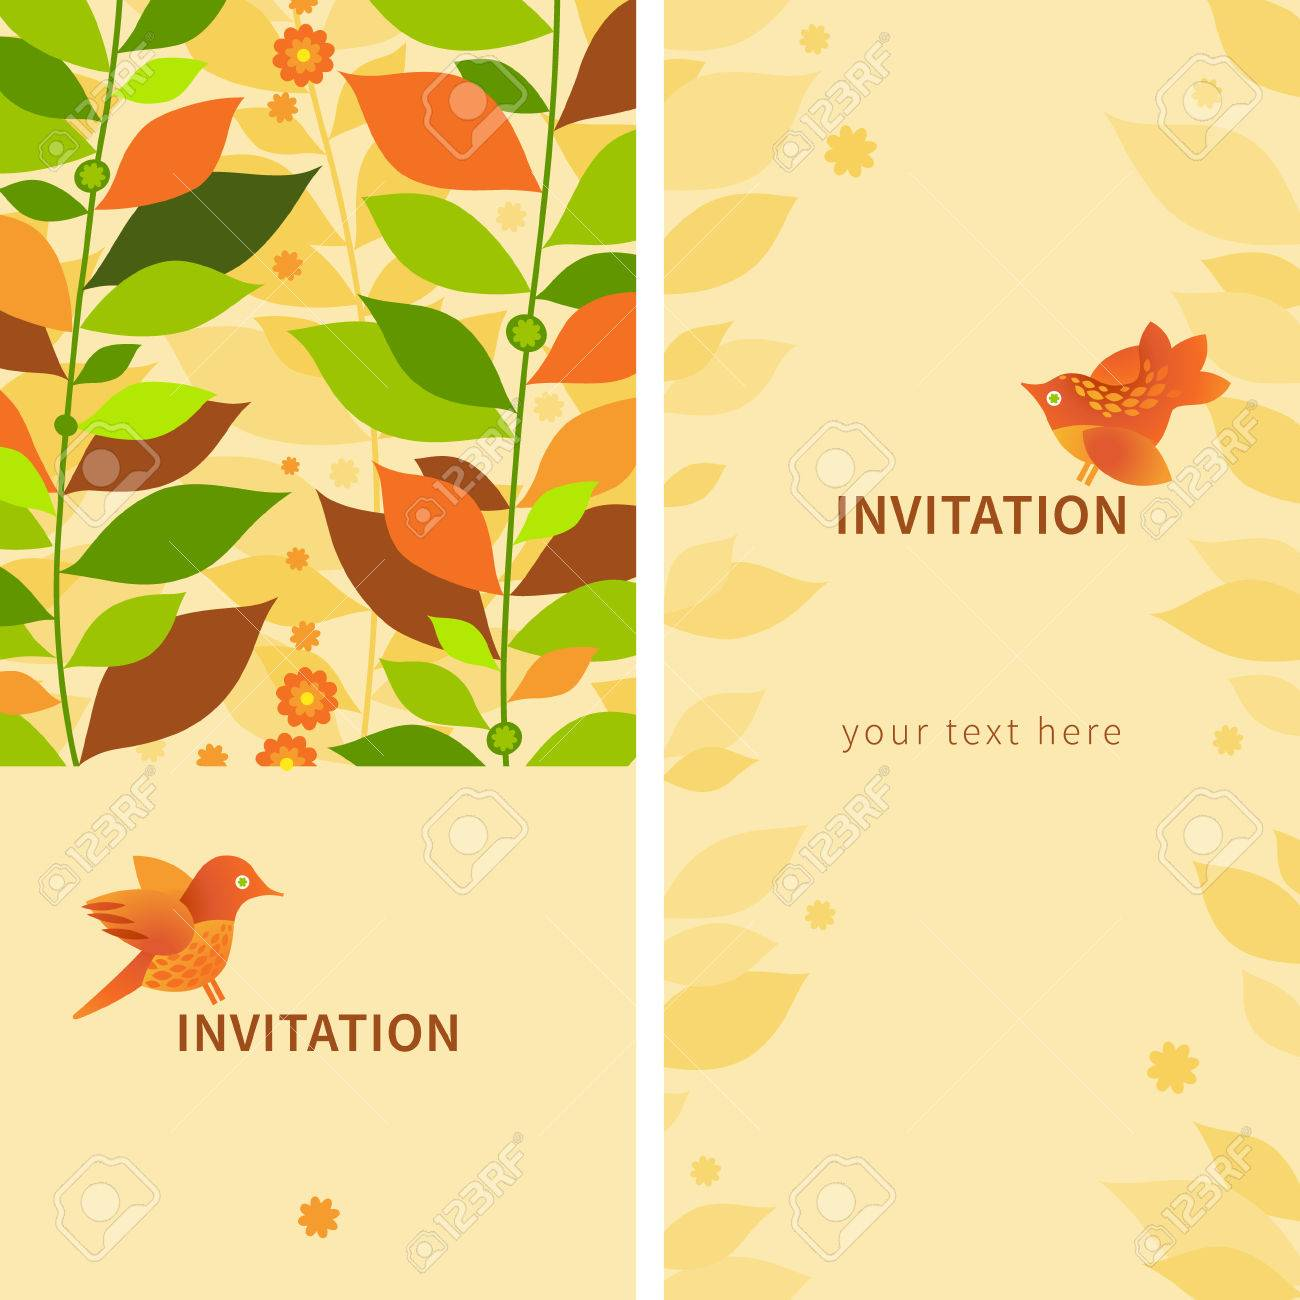 Leaf greeting cards gallery greeting card examples vintage greeting cards with leaves and birds template frame vintage greeting cards with leaves and birds kristyandbryce Choice Image